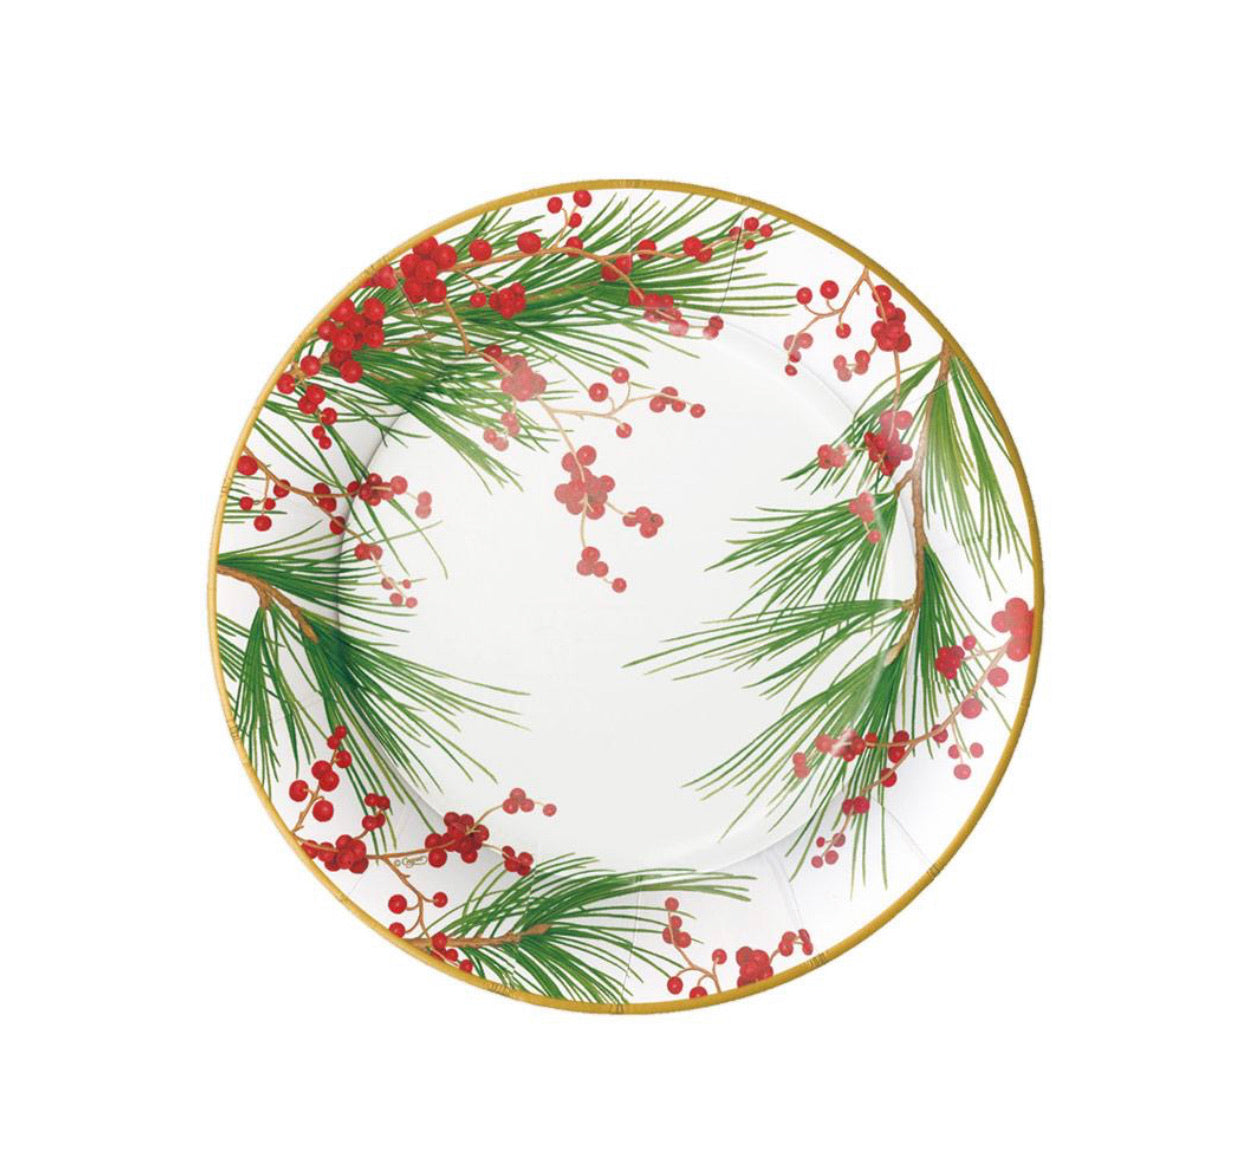 Caspari - Berries and Pine Paper Salad & Dessert Plates - 8 Per Package